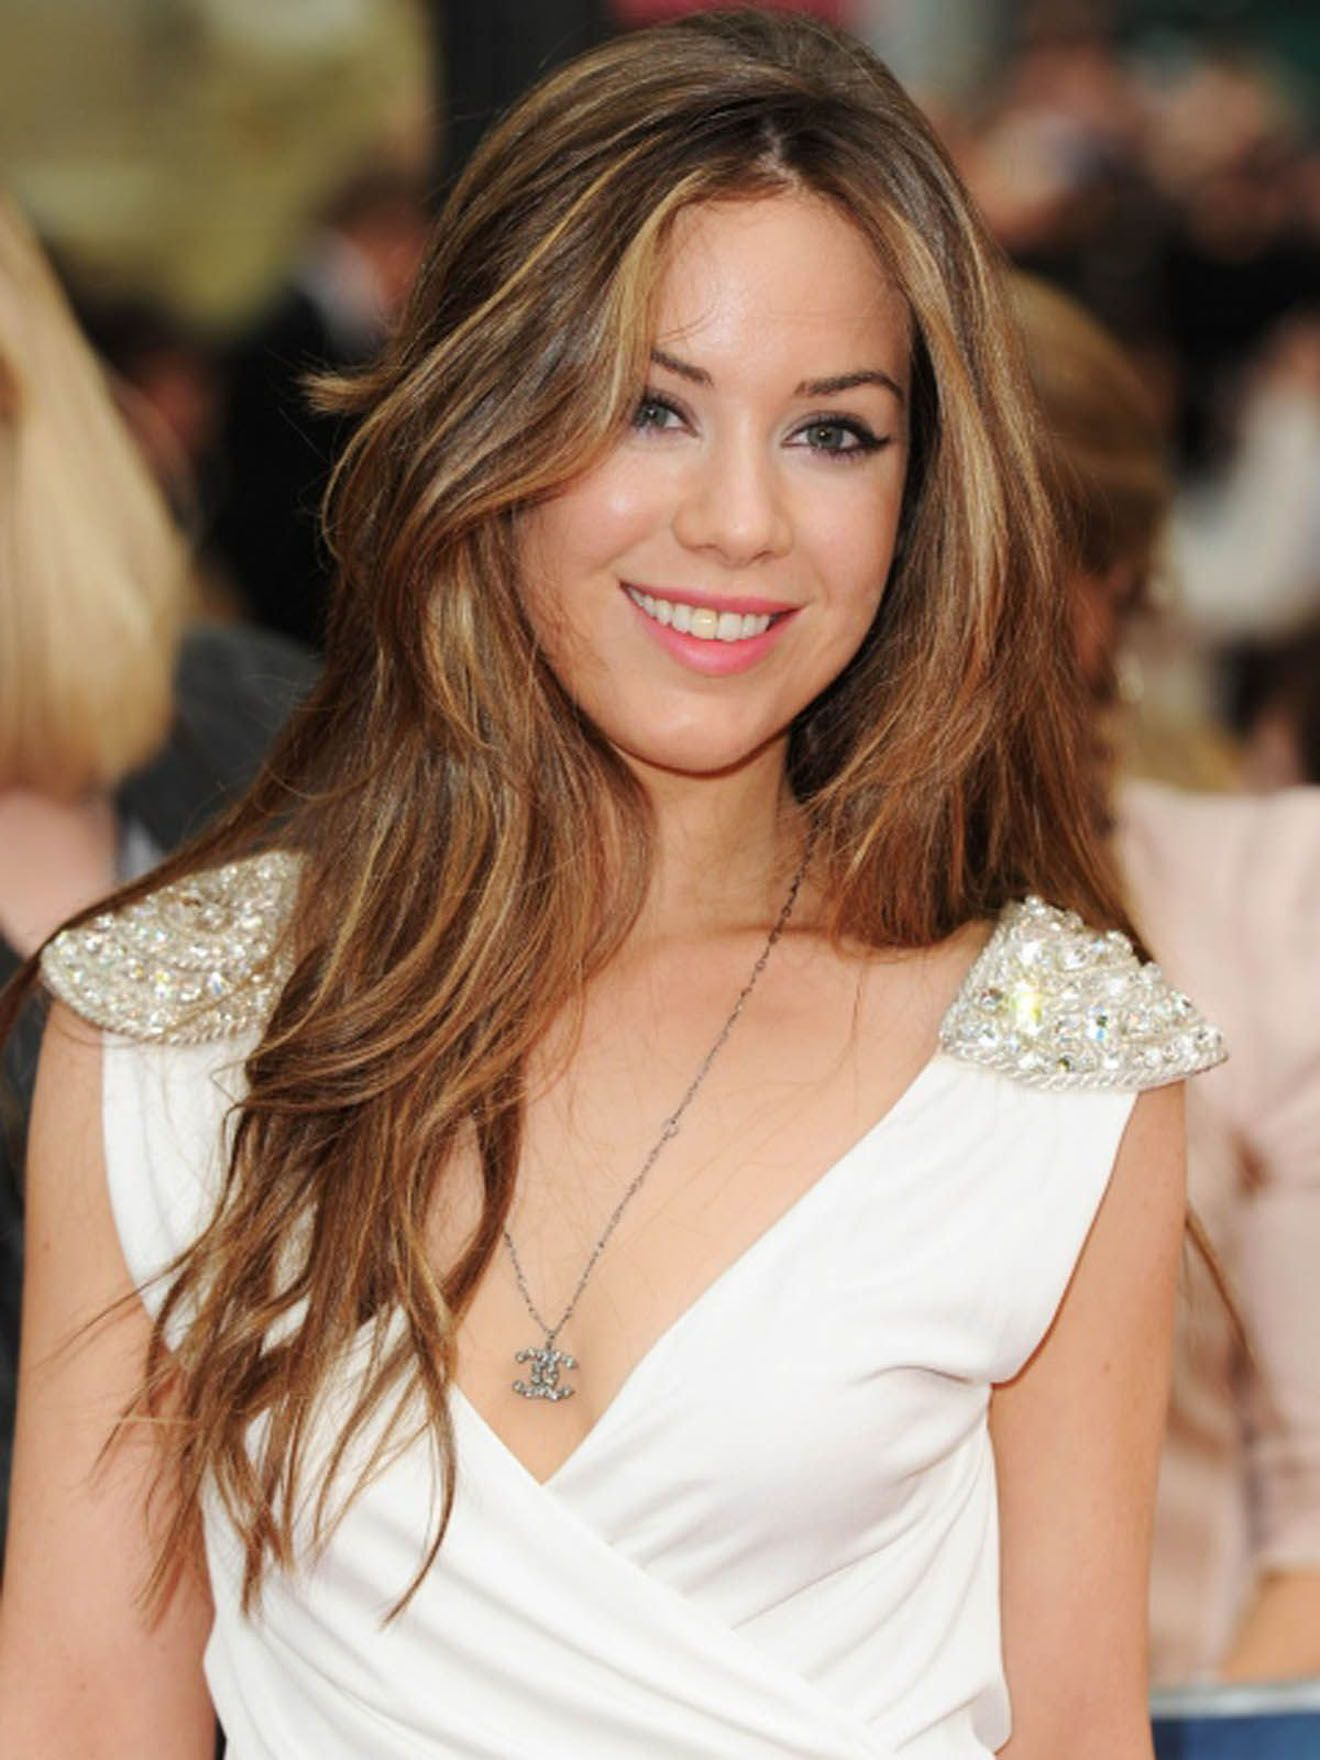 Forum on this topic: Emily Jacobson saber fencer, roxanne-mckee-born-1980/